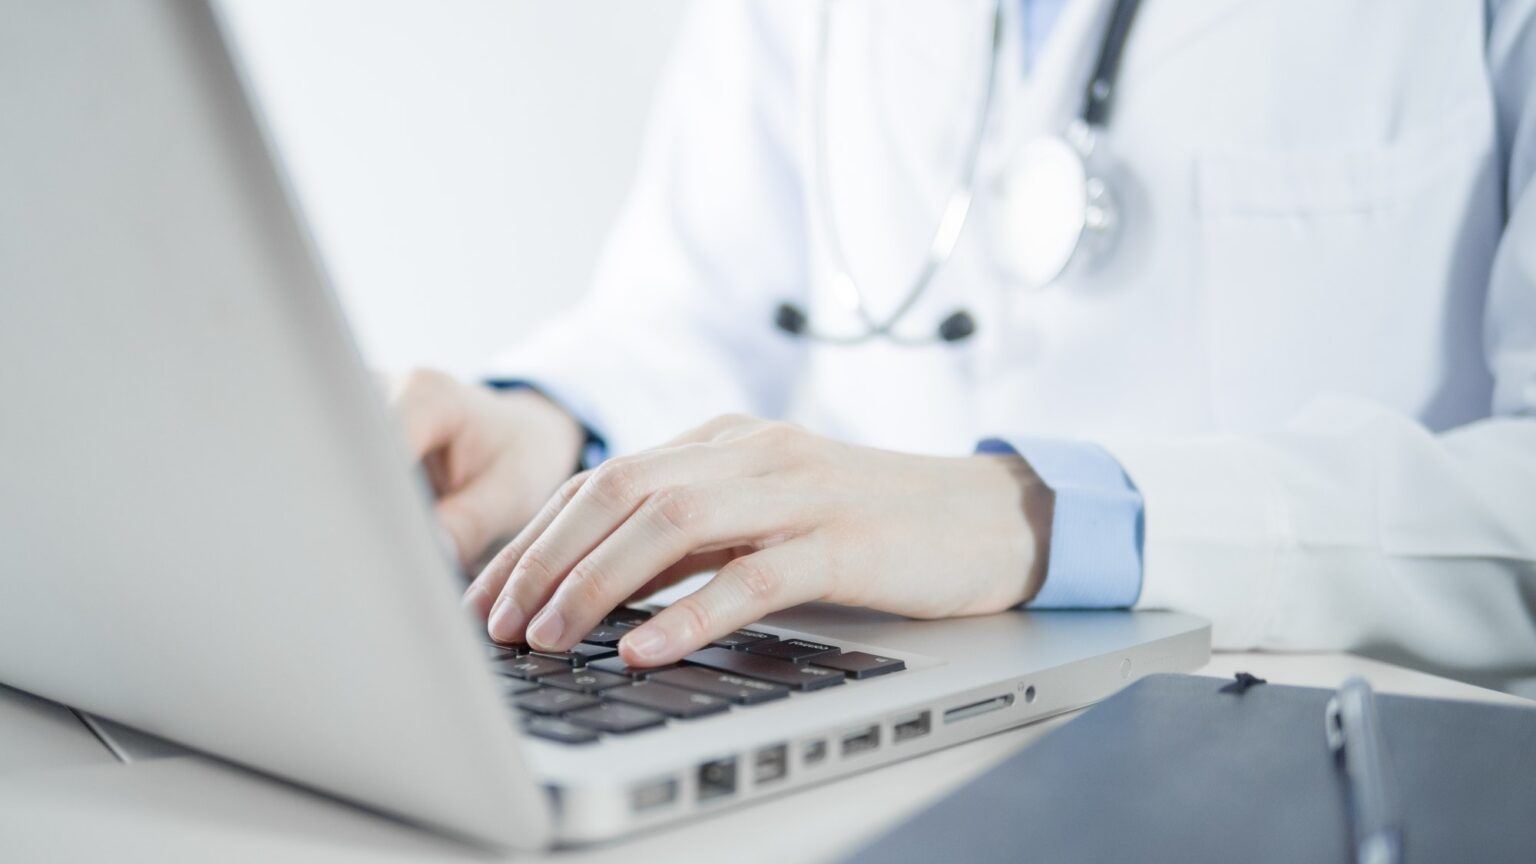 Female doctor working with laptop computer in her office for electronic medical record